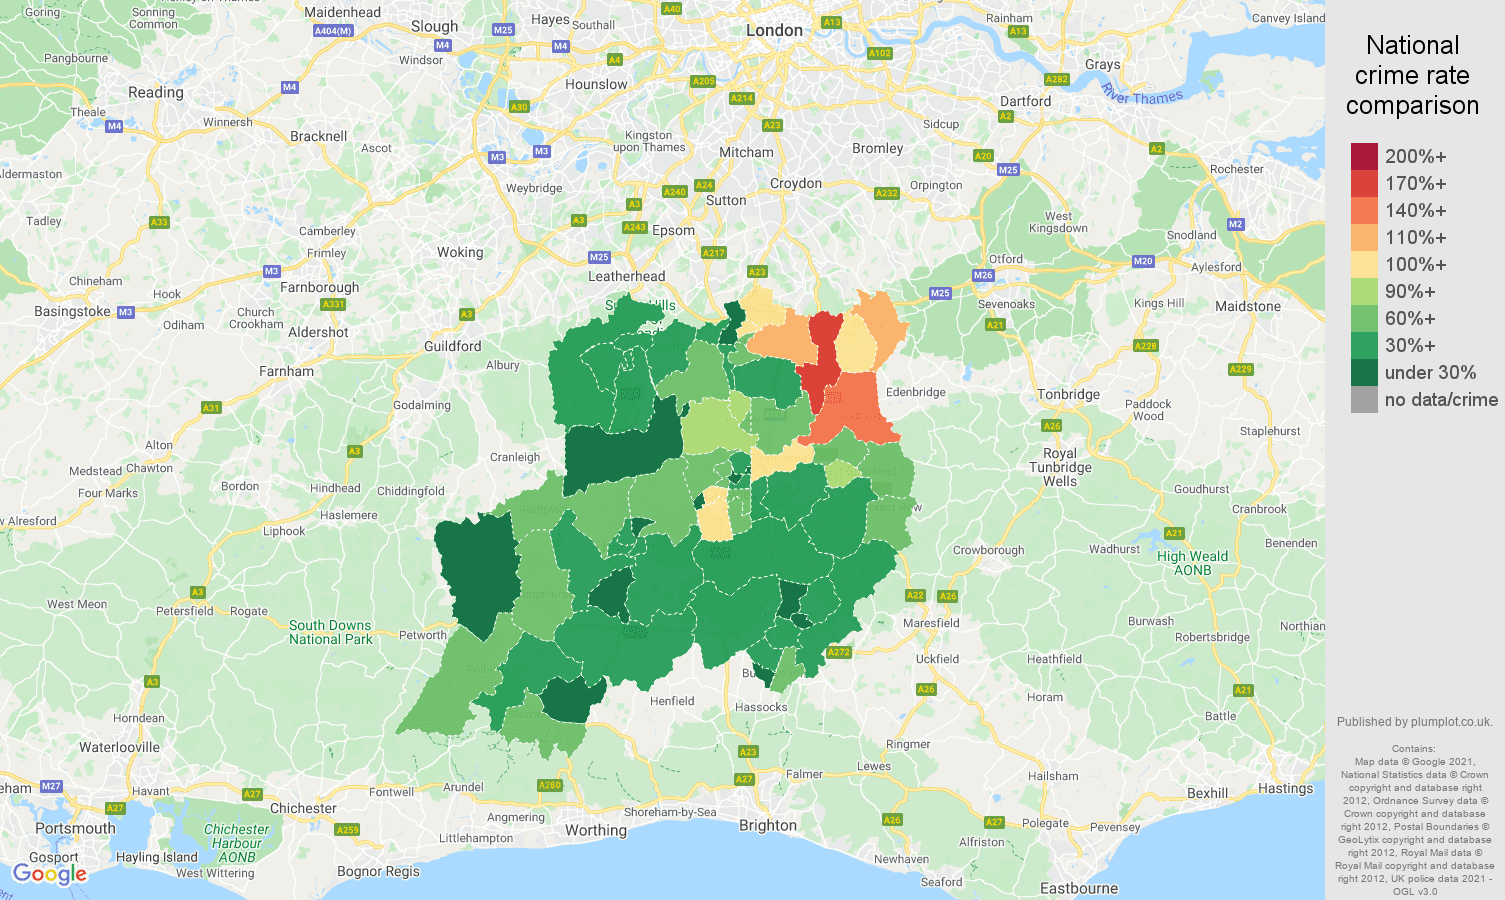 Redhill vehicle crime rate comparison map